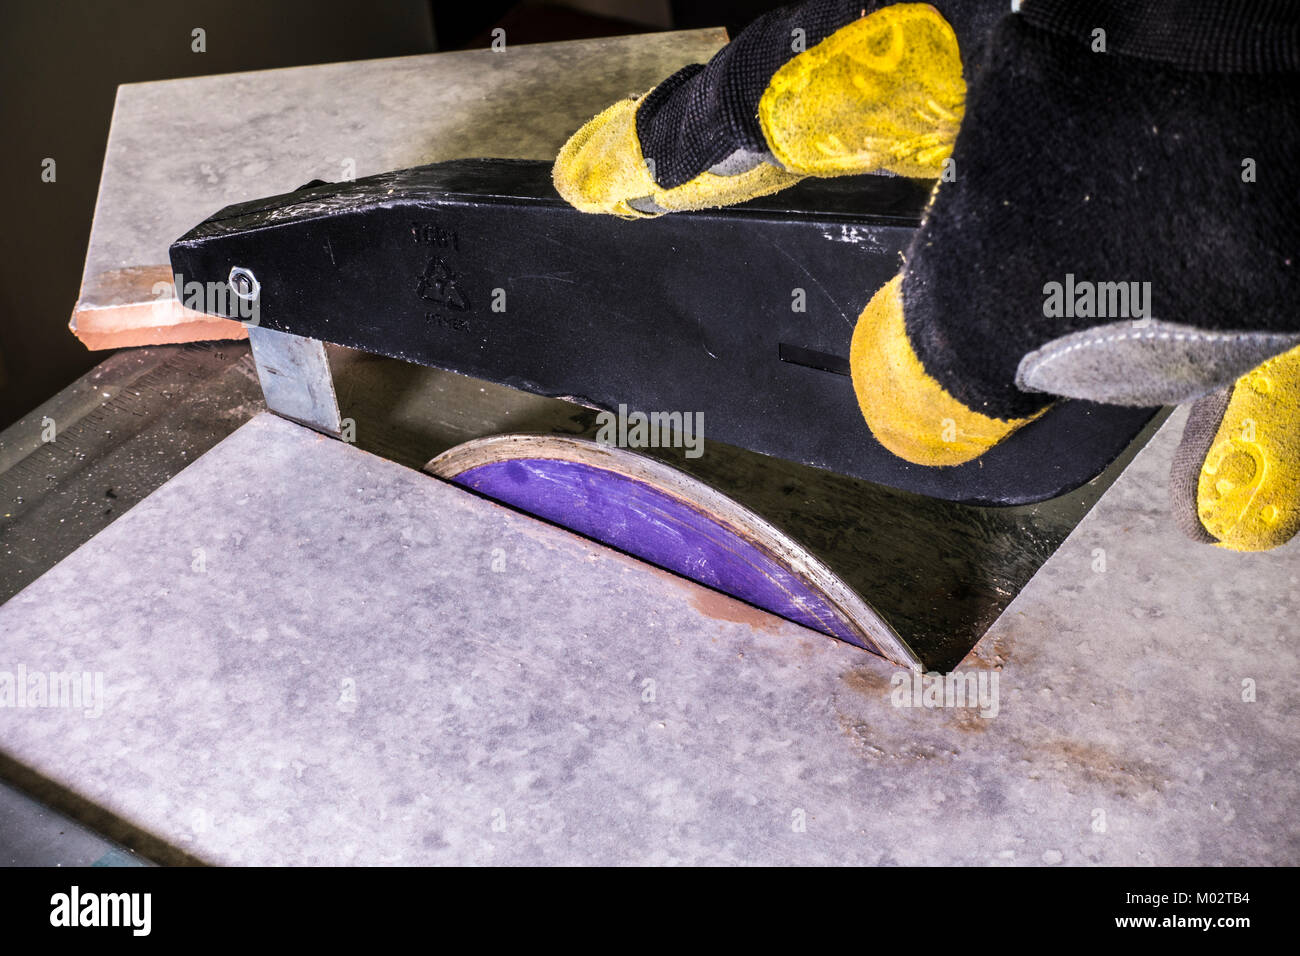 Hand in protective glove, holding the safety guard above the cutting disc of a water cooled ceramic tile cutter, - Stock Image